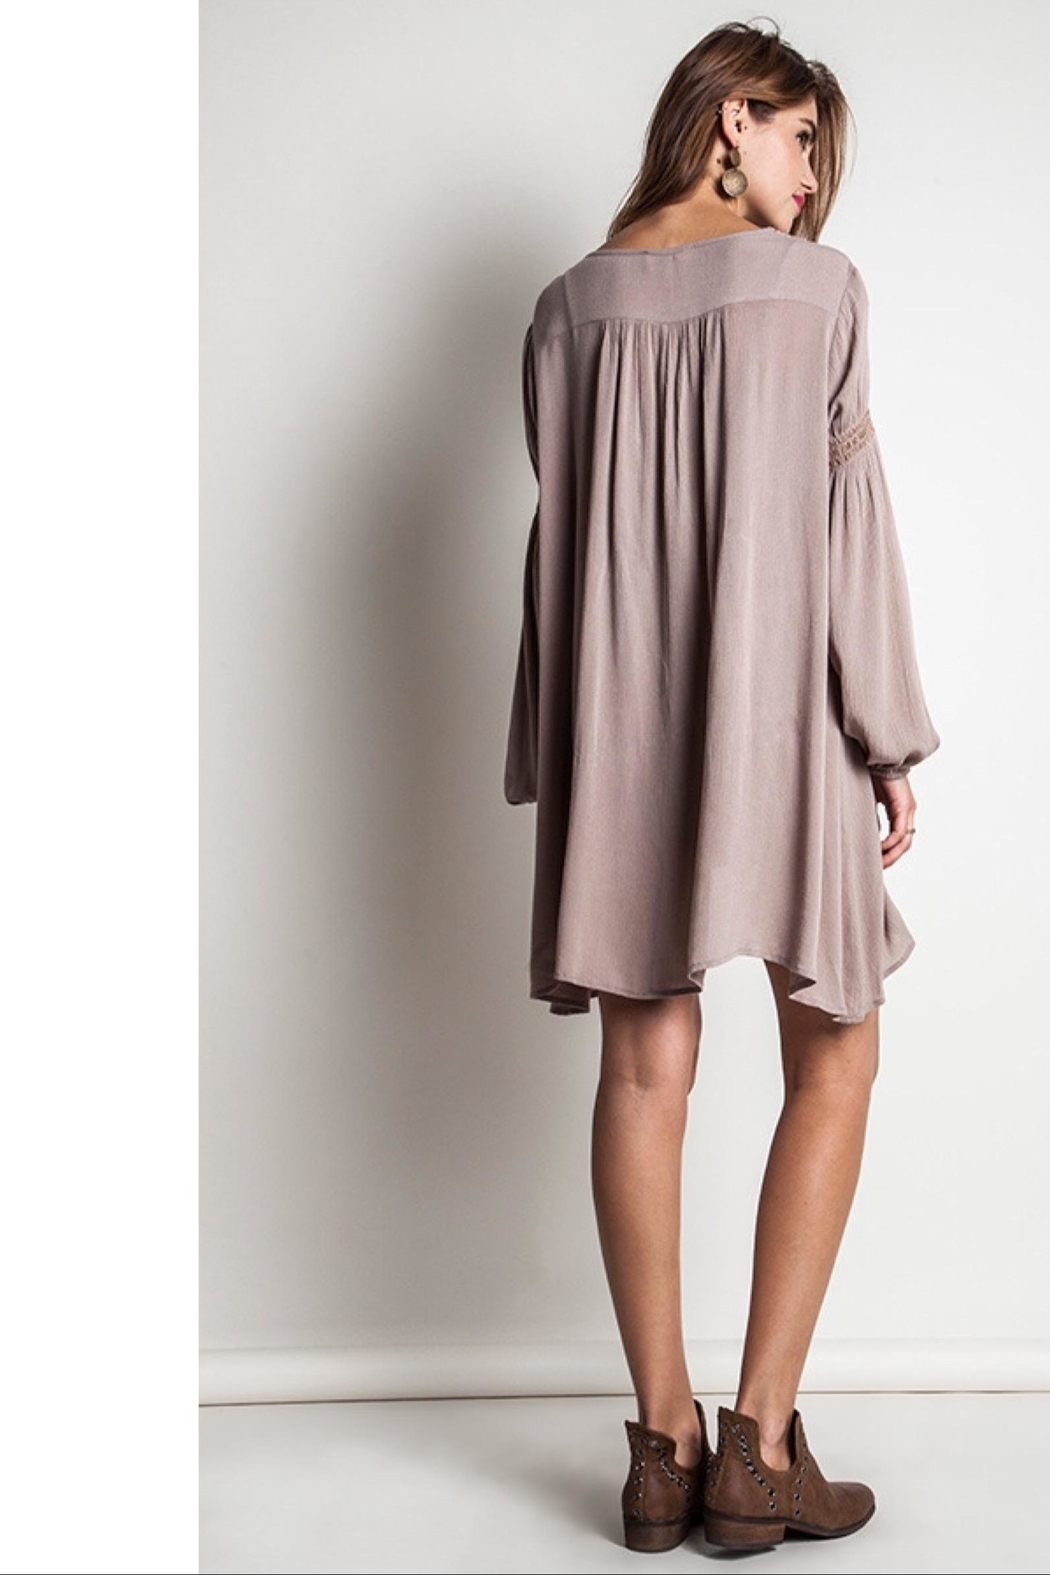 People Outfitter Taupe Bishop Sleeves Embroidery Tunic Dress - Side Cropped Image